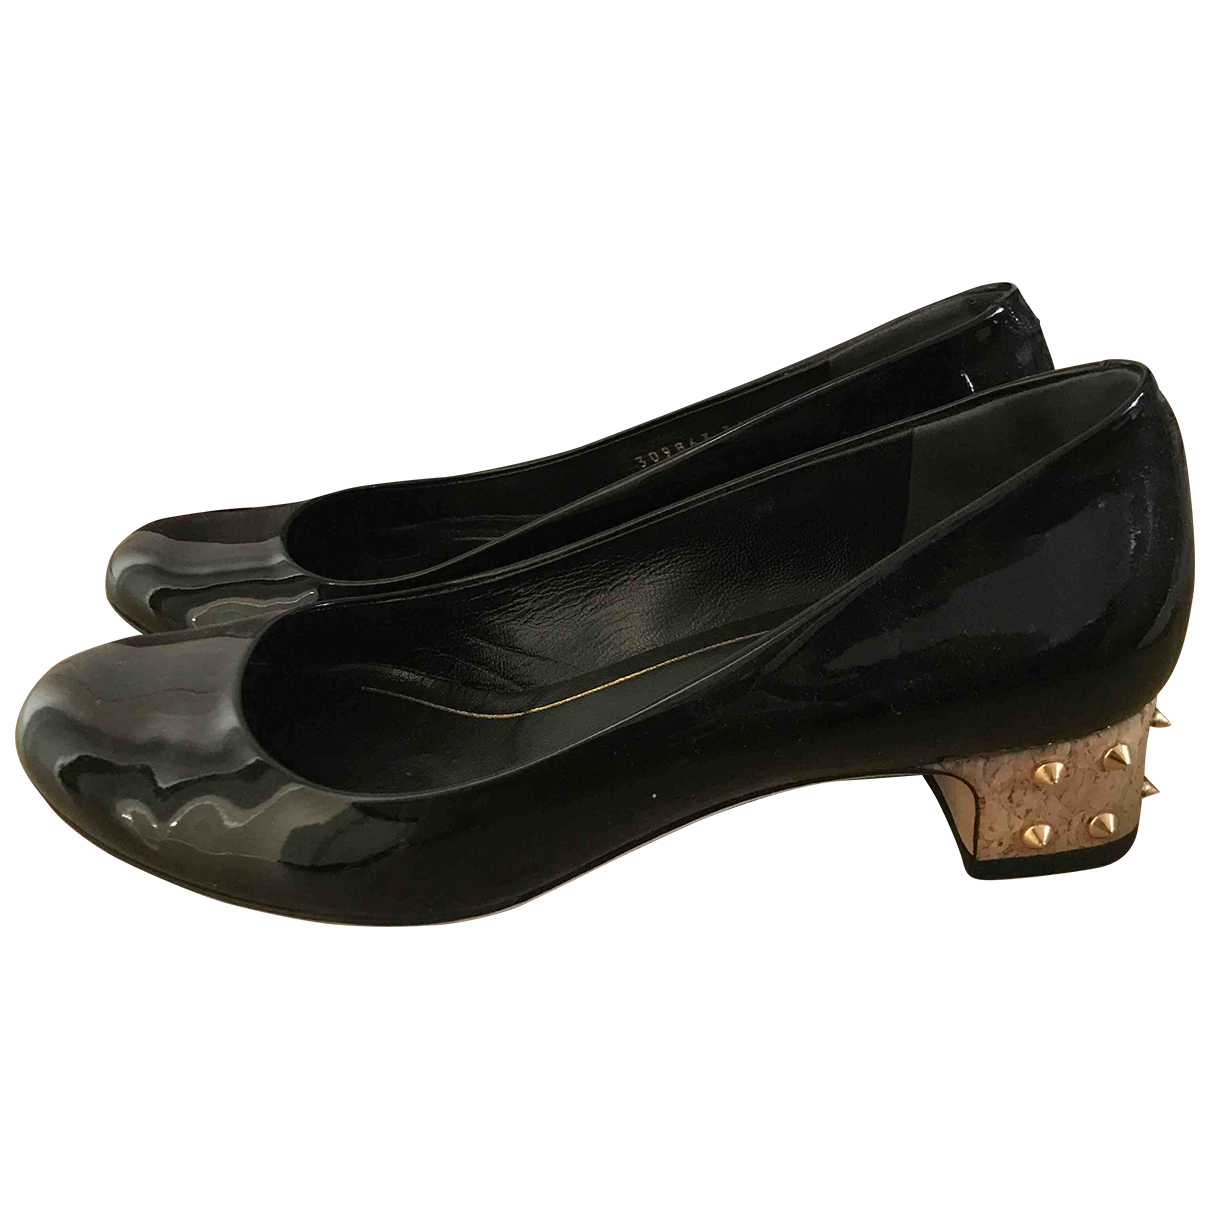 Gucci \N Black Patent leather Ballet flats for Women 36.5 EU